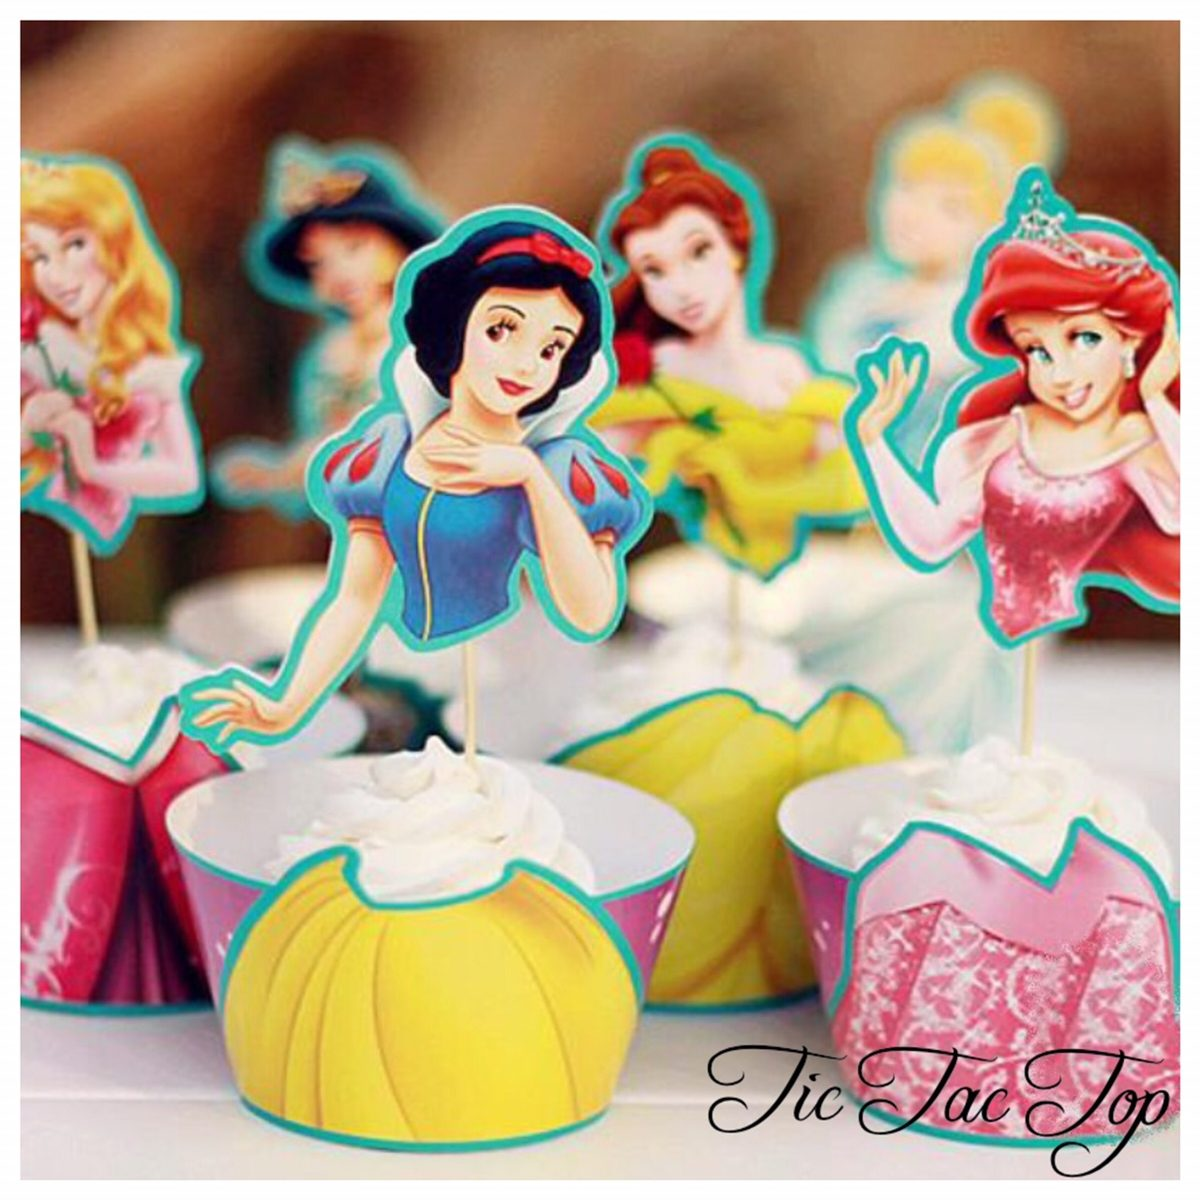 Six Princesses SPECIAL EDITION Cupcake Wrappers + Toppers